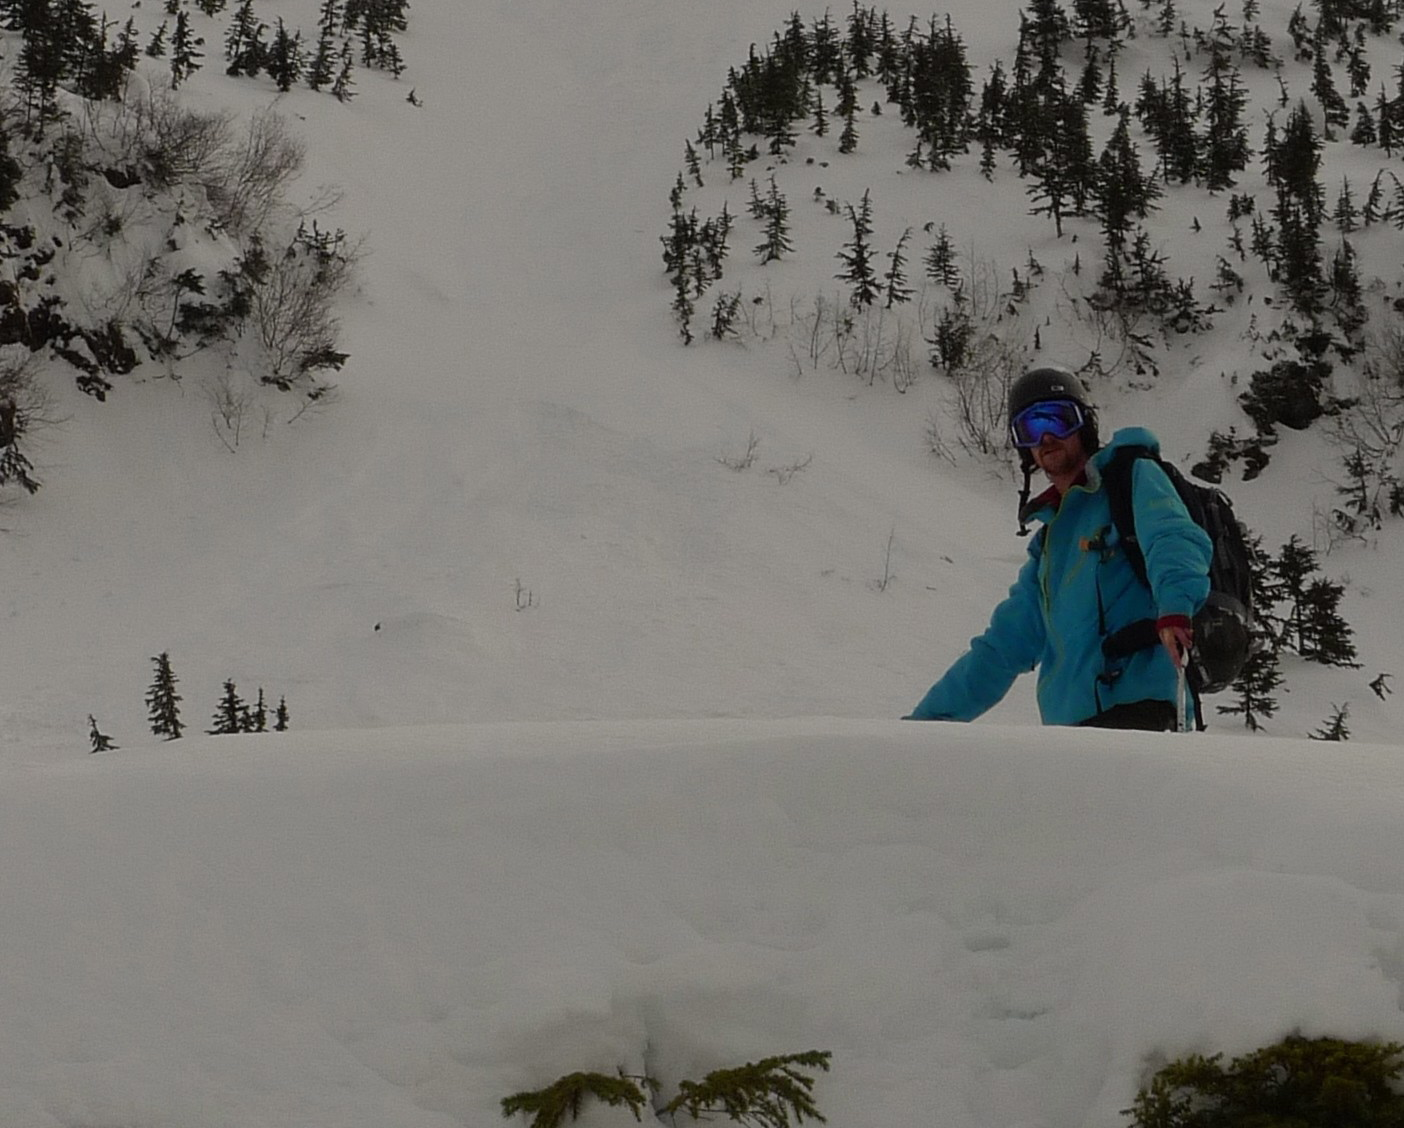 2010-2011 ON3P Caylor, 191cm, Blister Gear Review